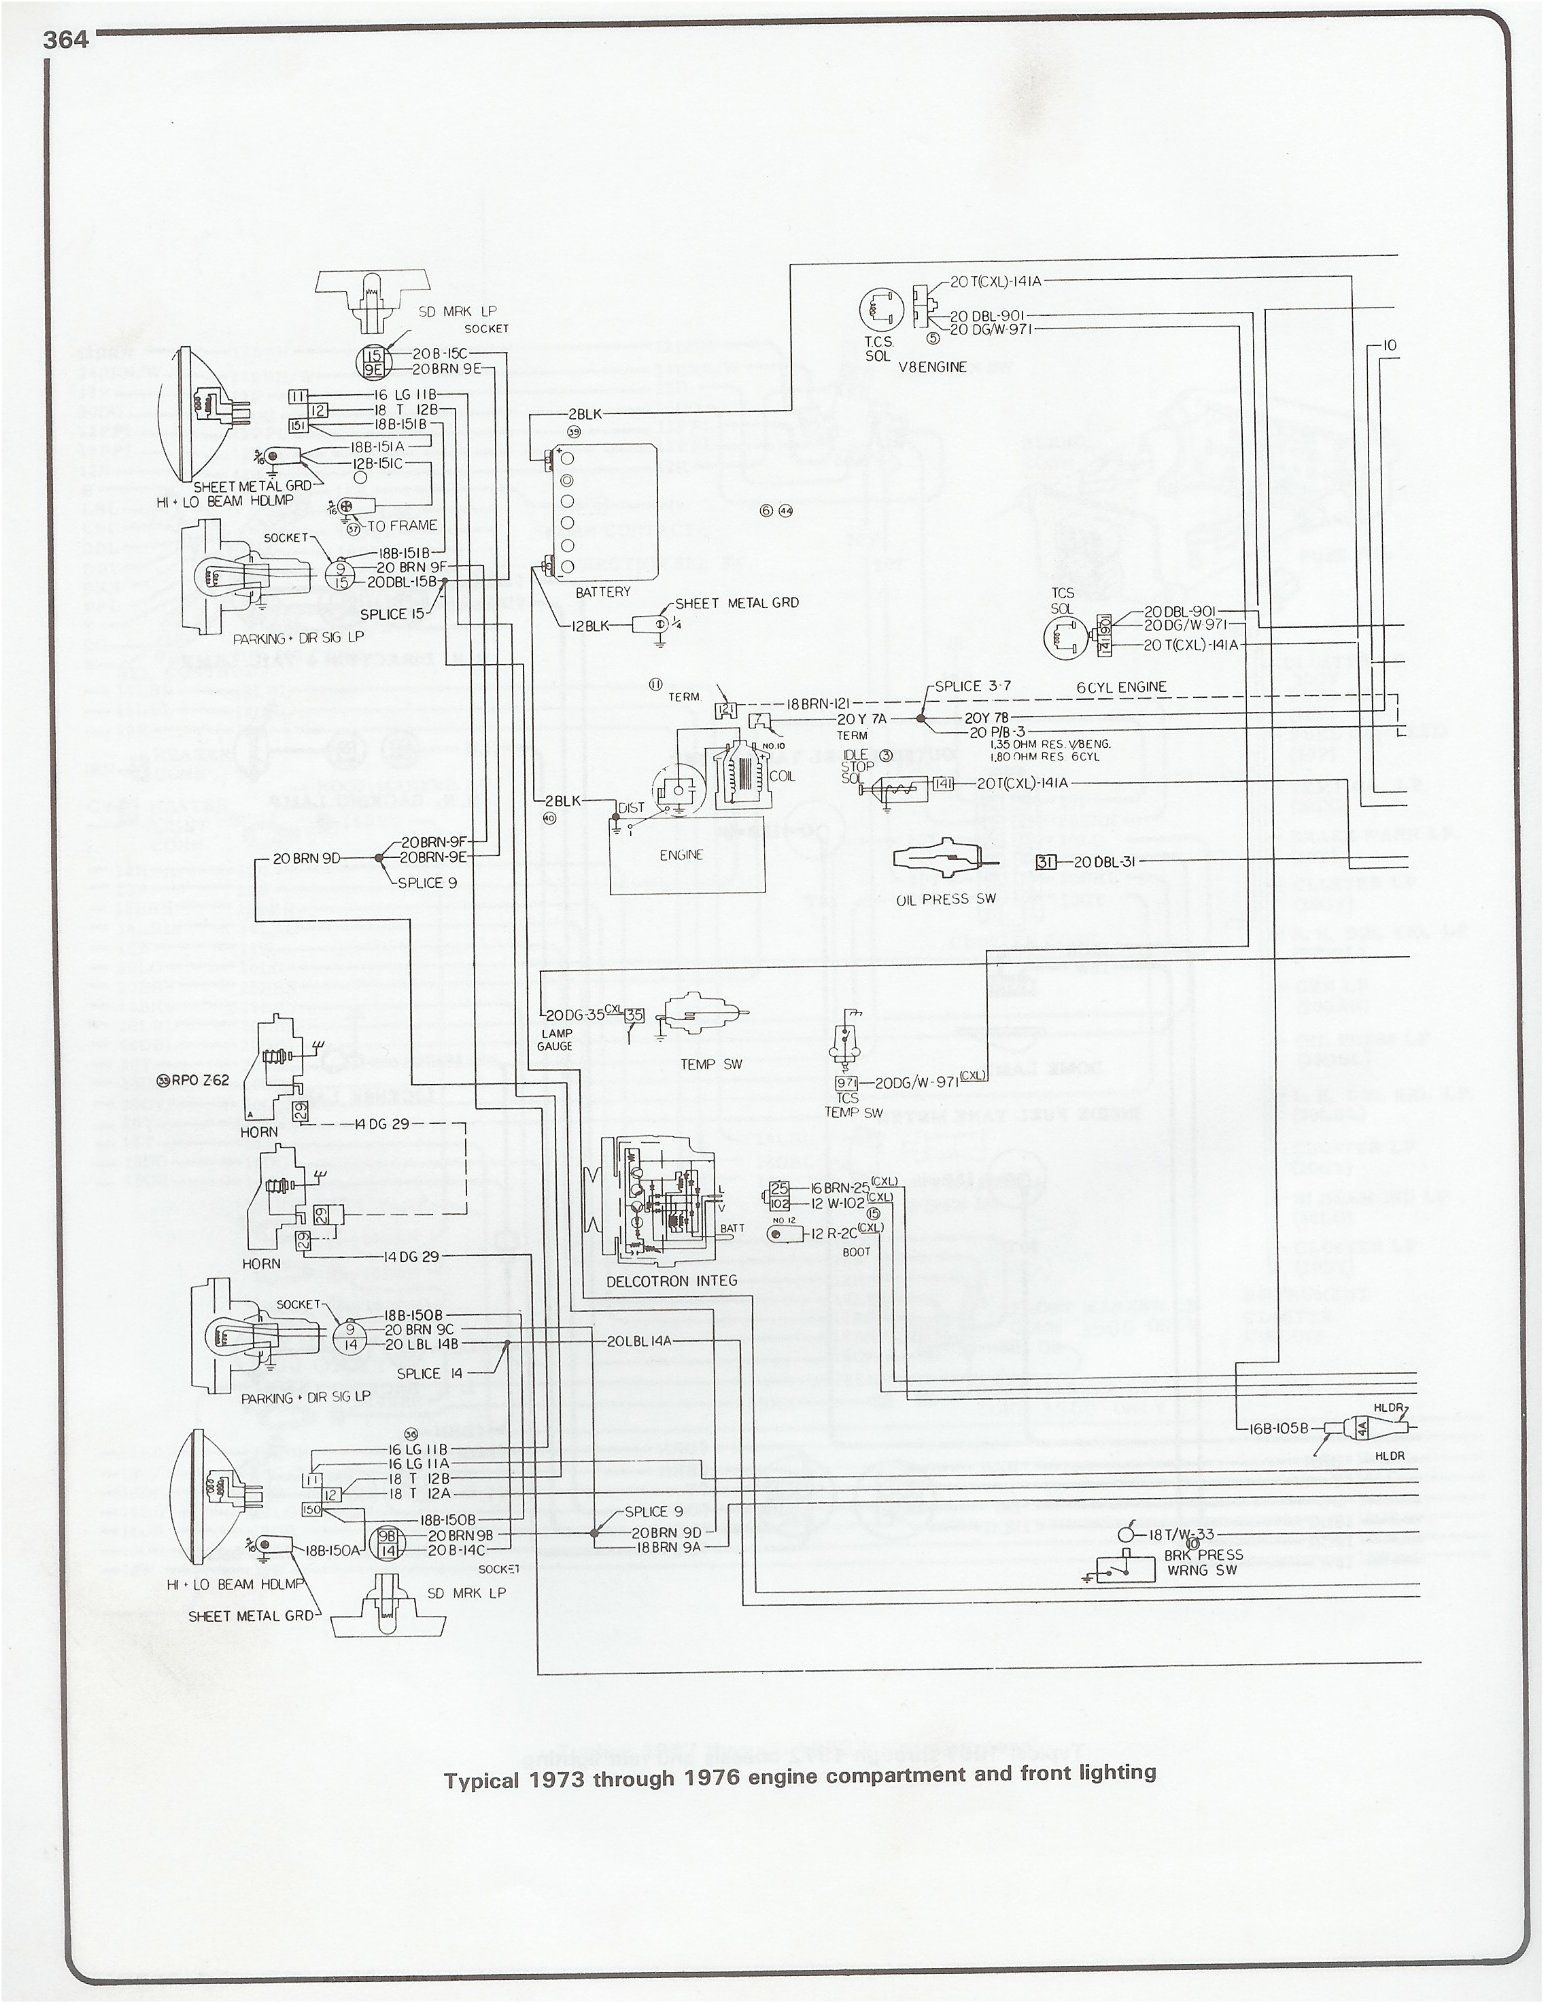 hight resolution of wiring diagram 1973 1976 chevy pickup chevy wiring diagram 1974 chevy pickup wiring